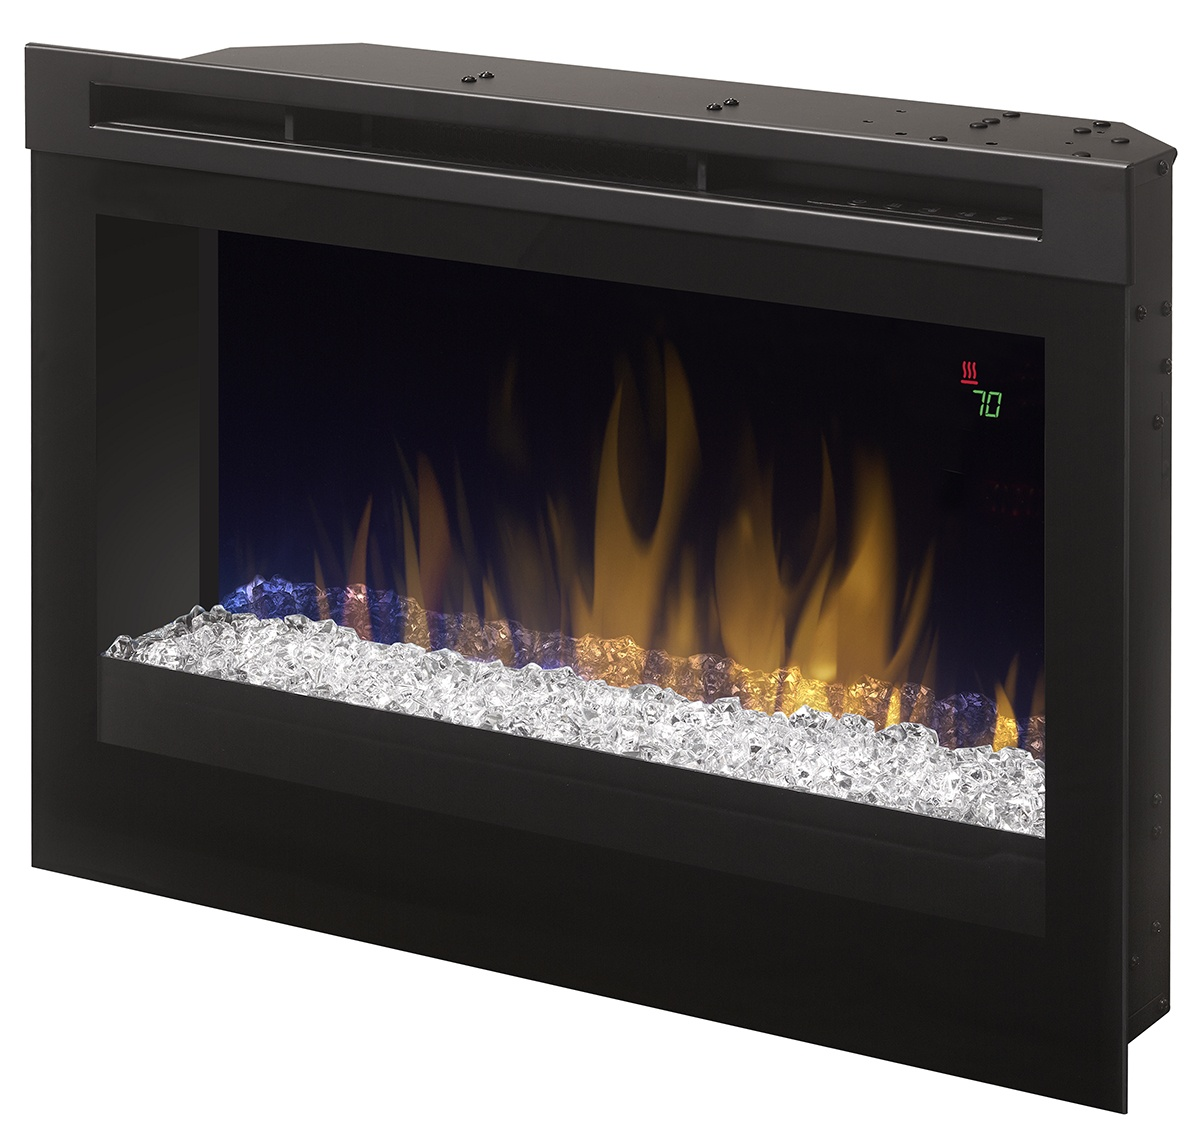 dimplex 25 prime dfr2551g electric fireplace insert